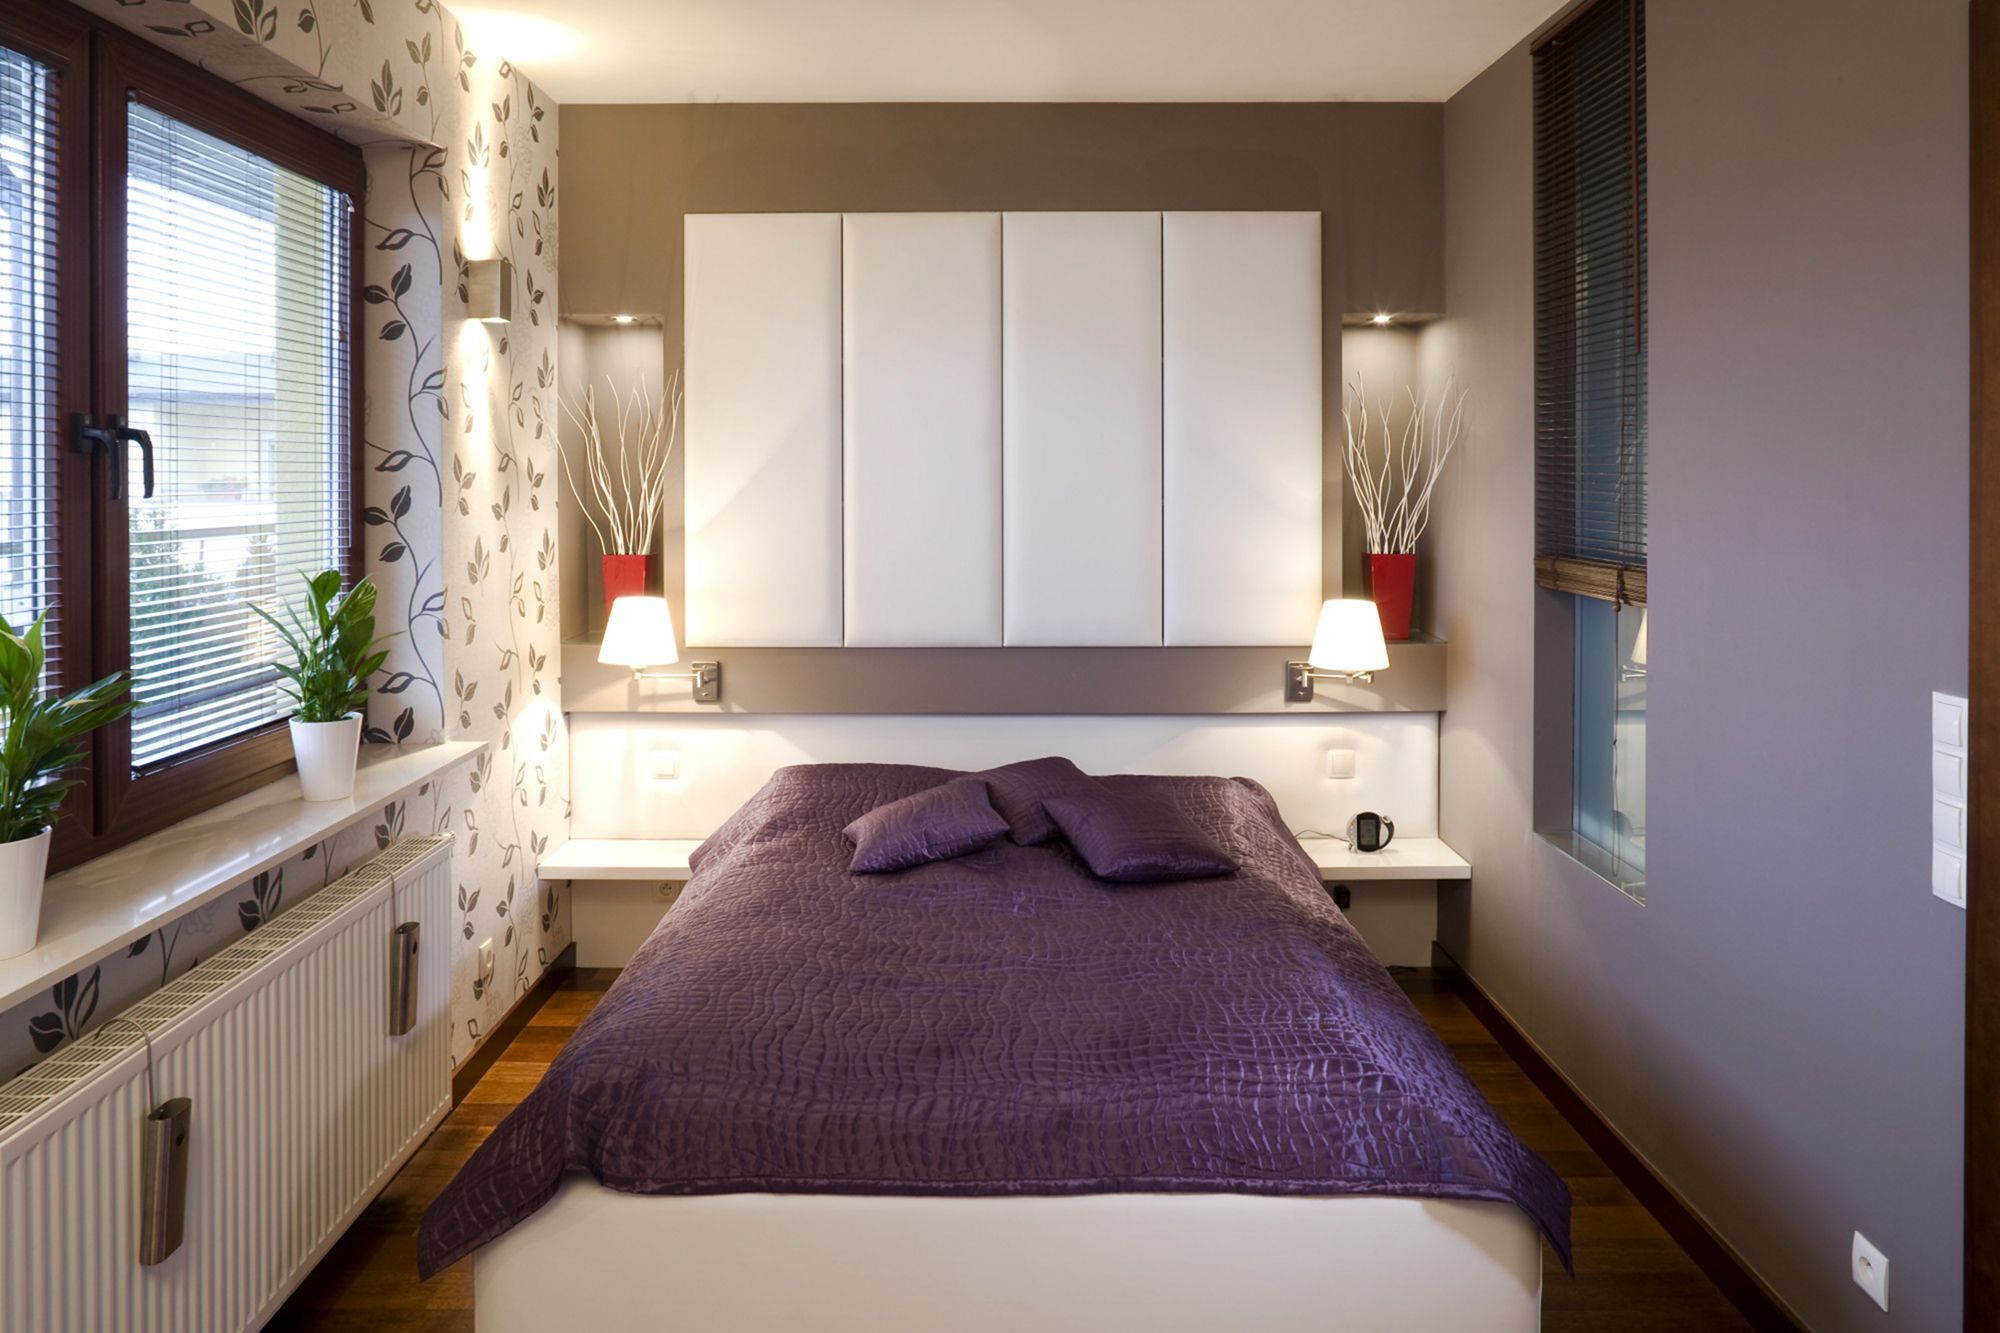 10 Amazing Narrow Bedroom Design Ideas for You to Try  Small